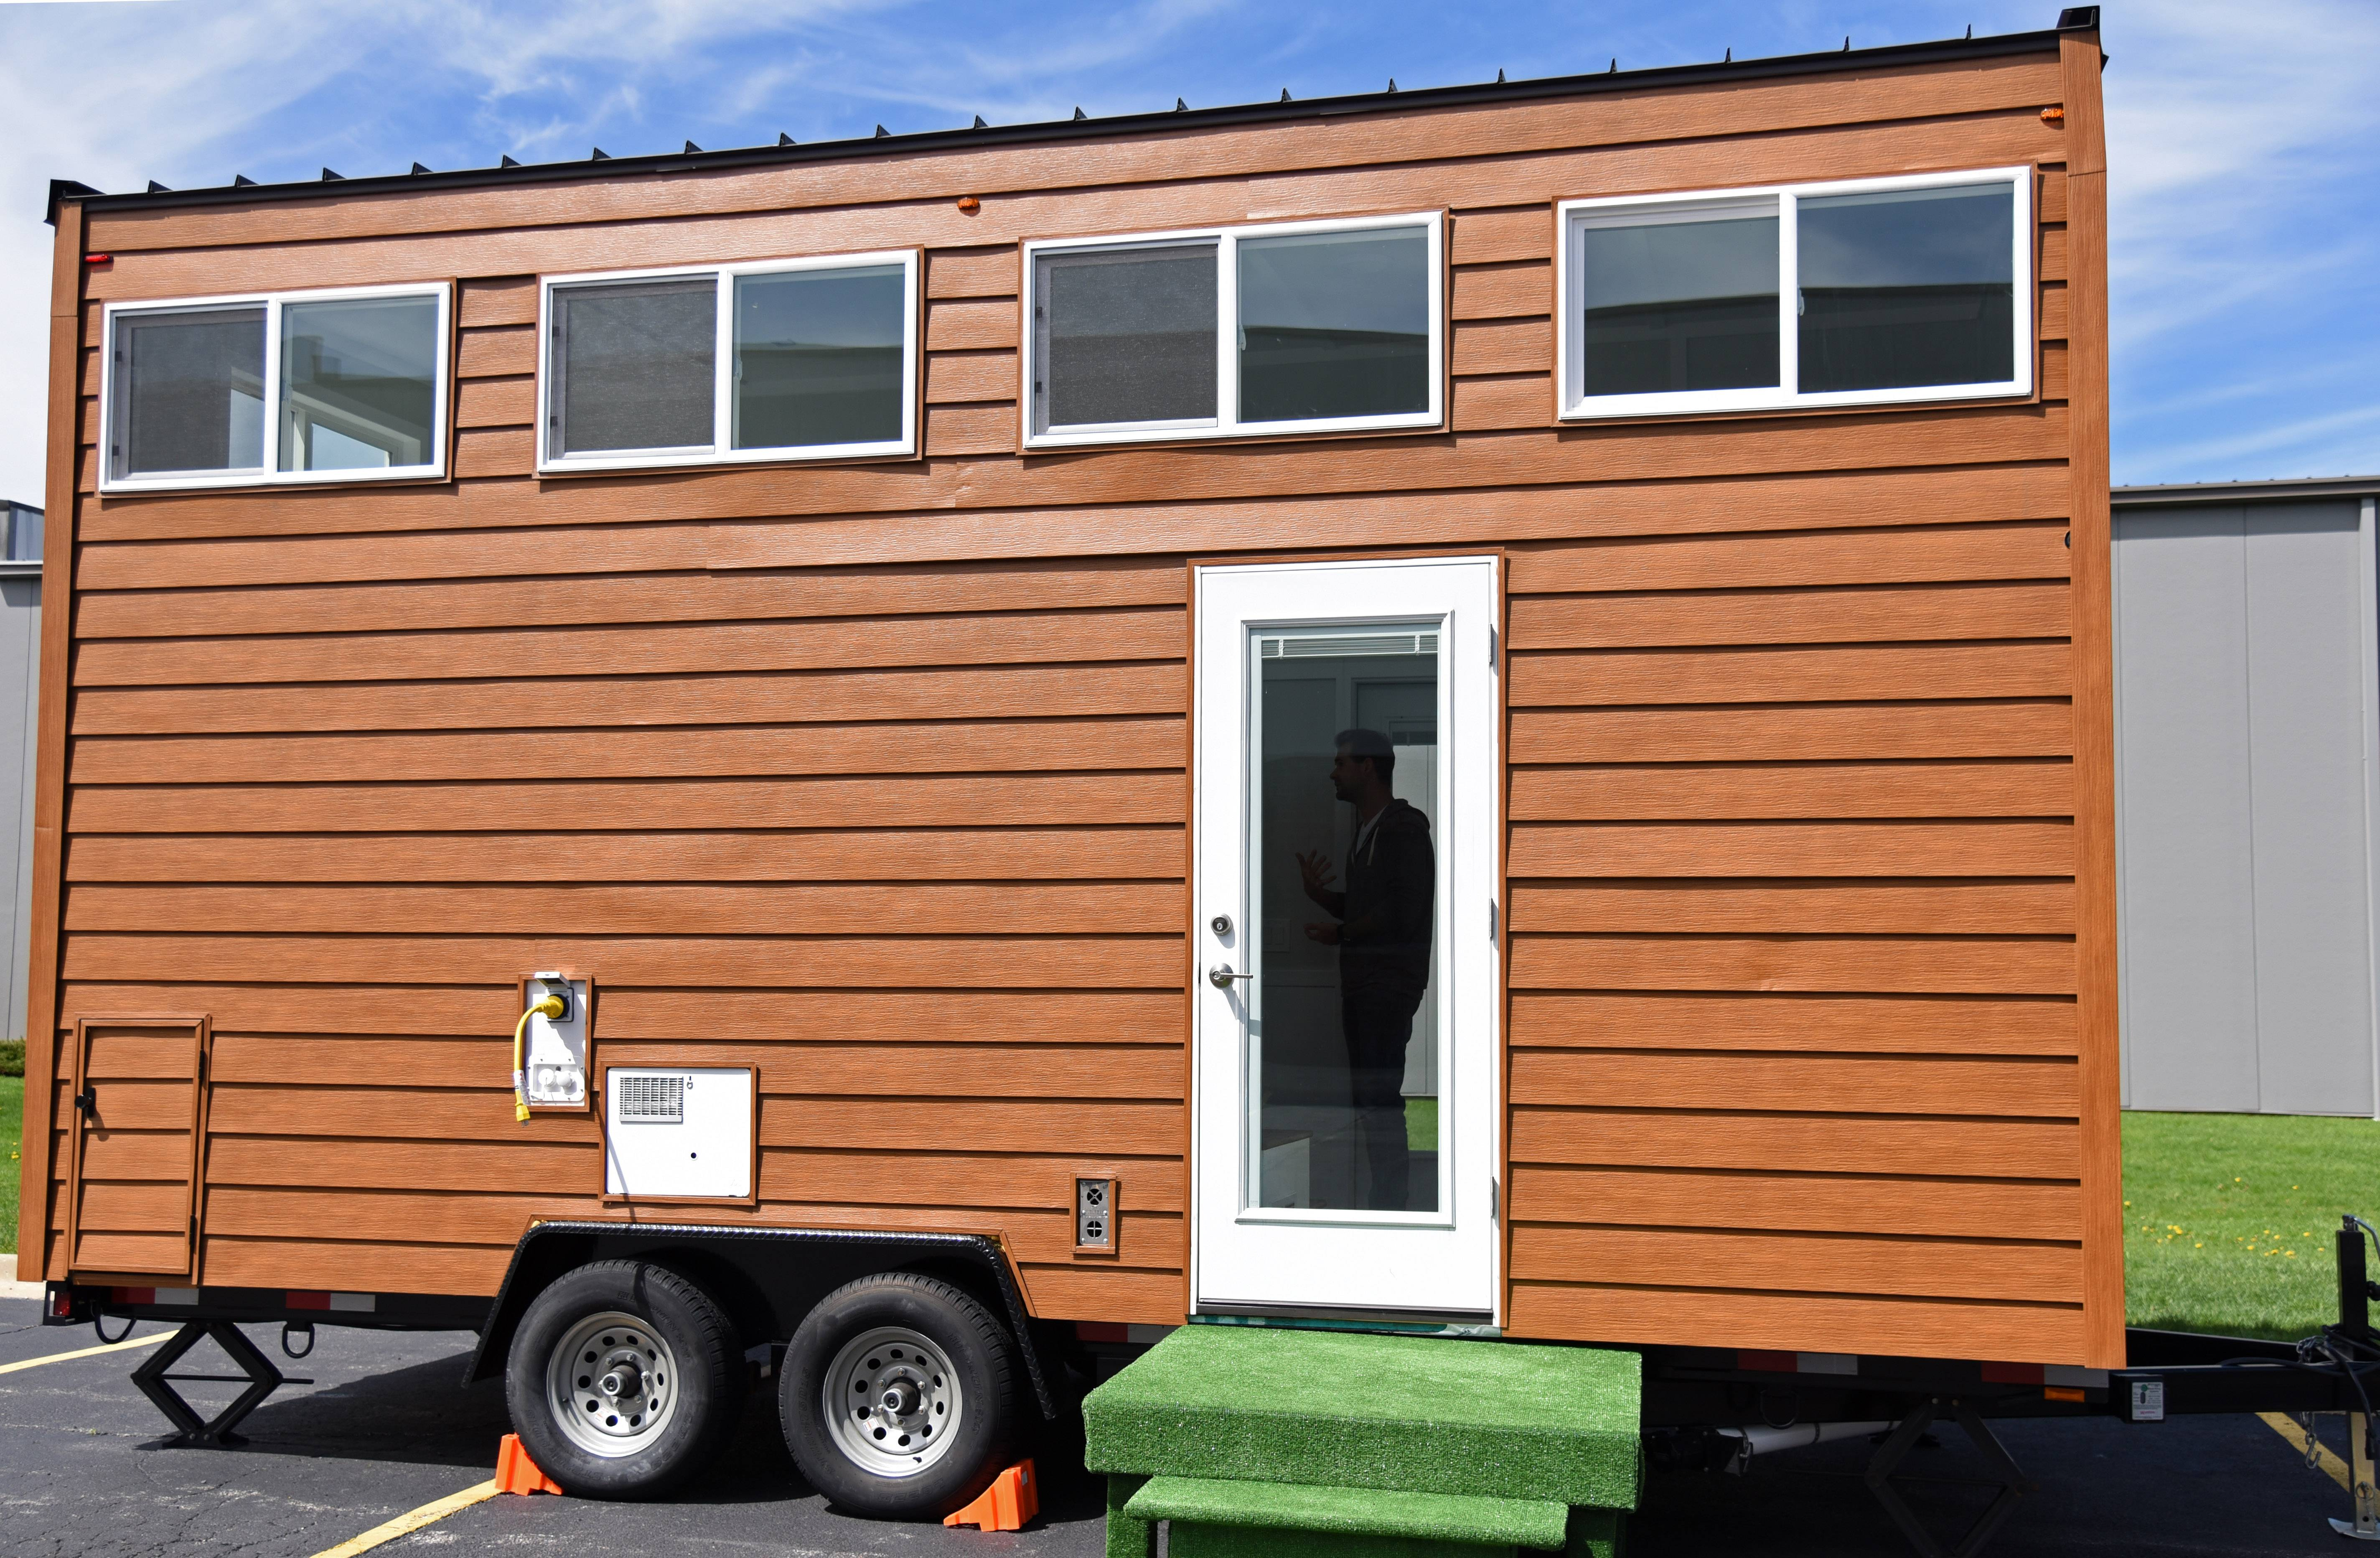 It Looks Small On The Outside, But Thereu0027s More To This Tiny House On The